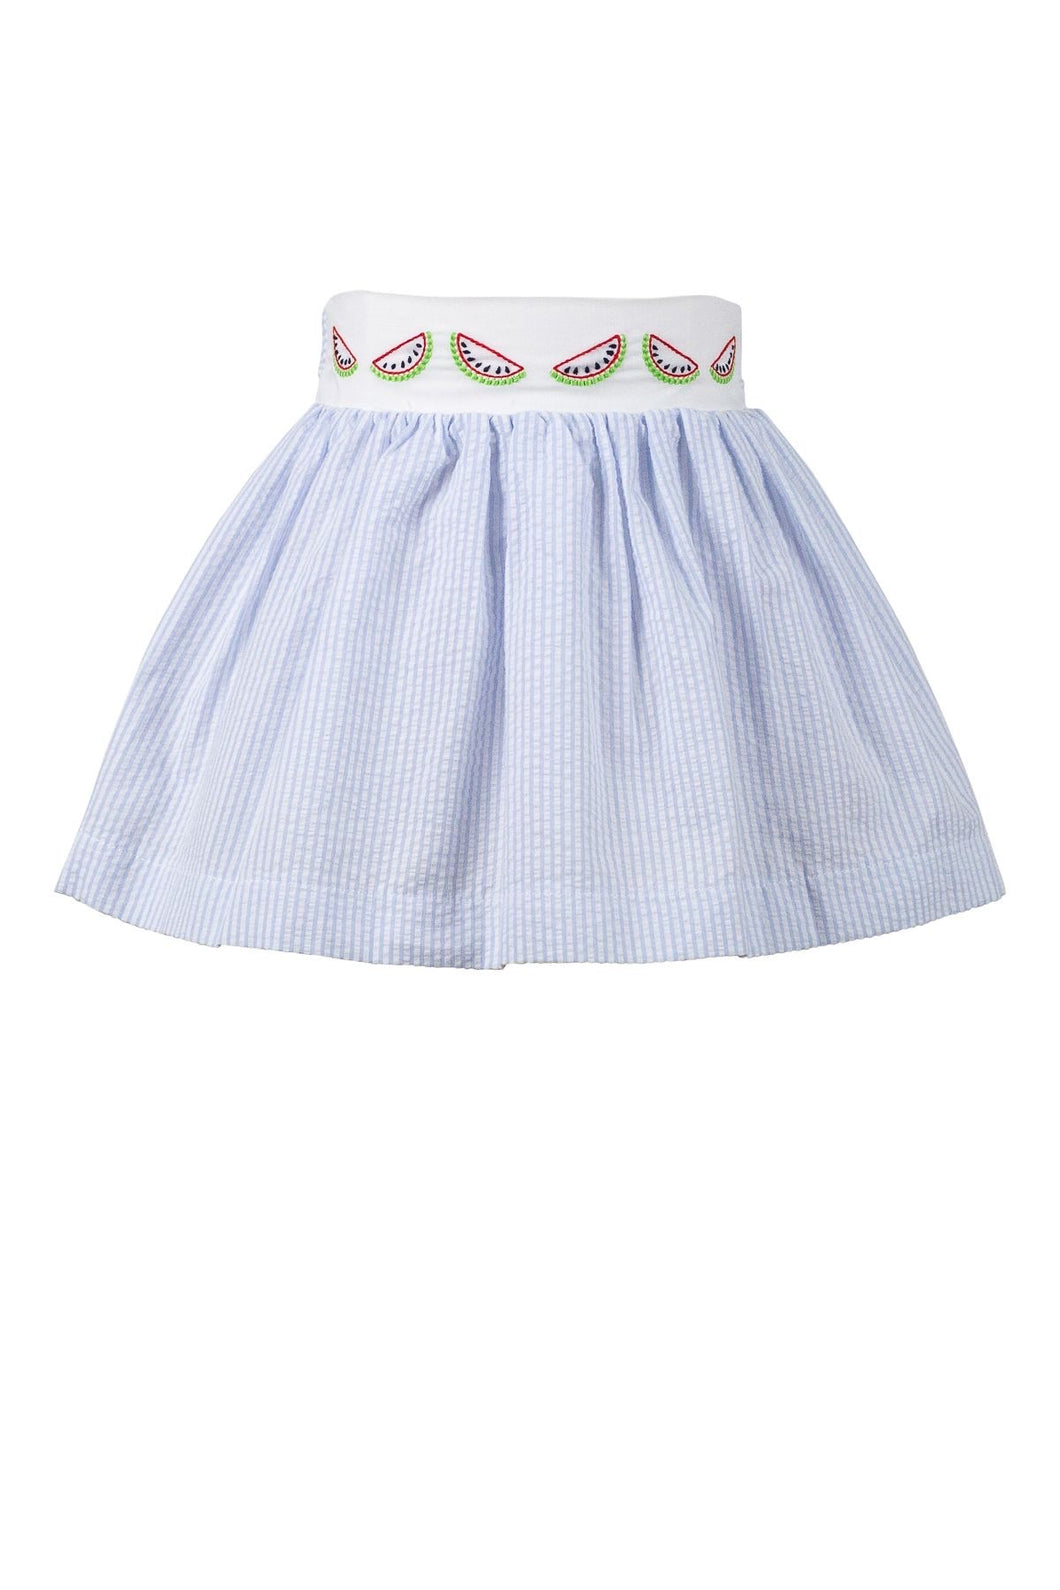 Watermelon Seersucker Skirt